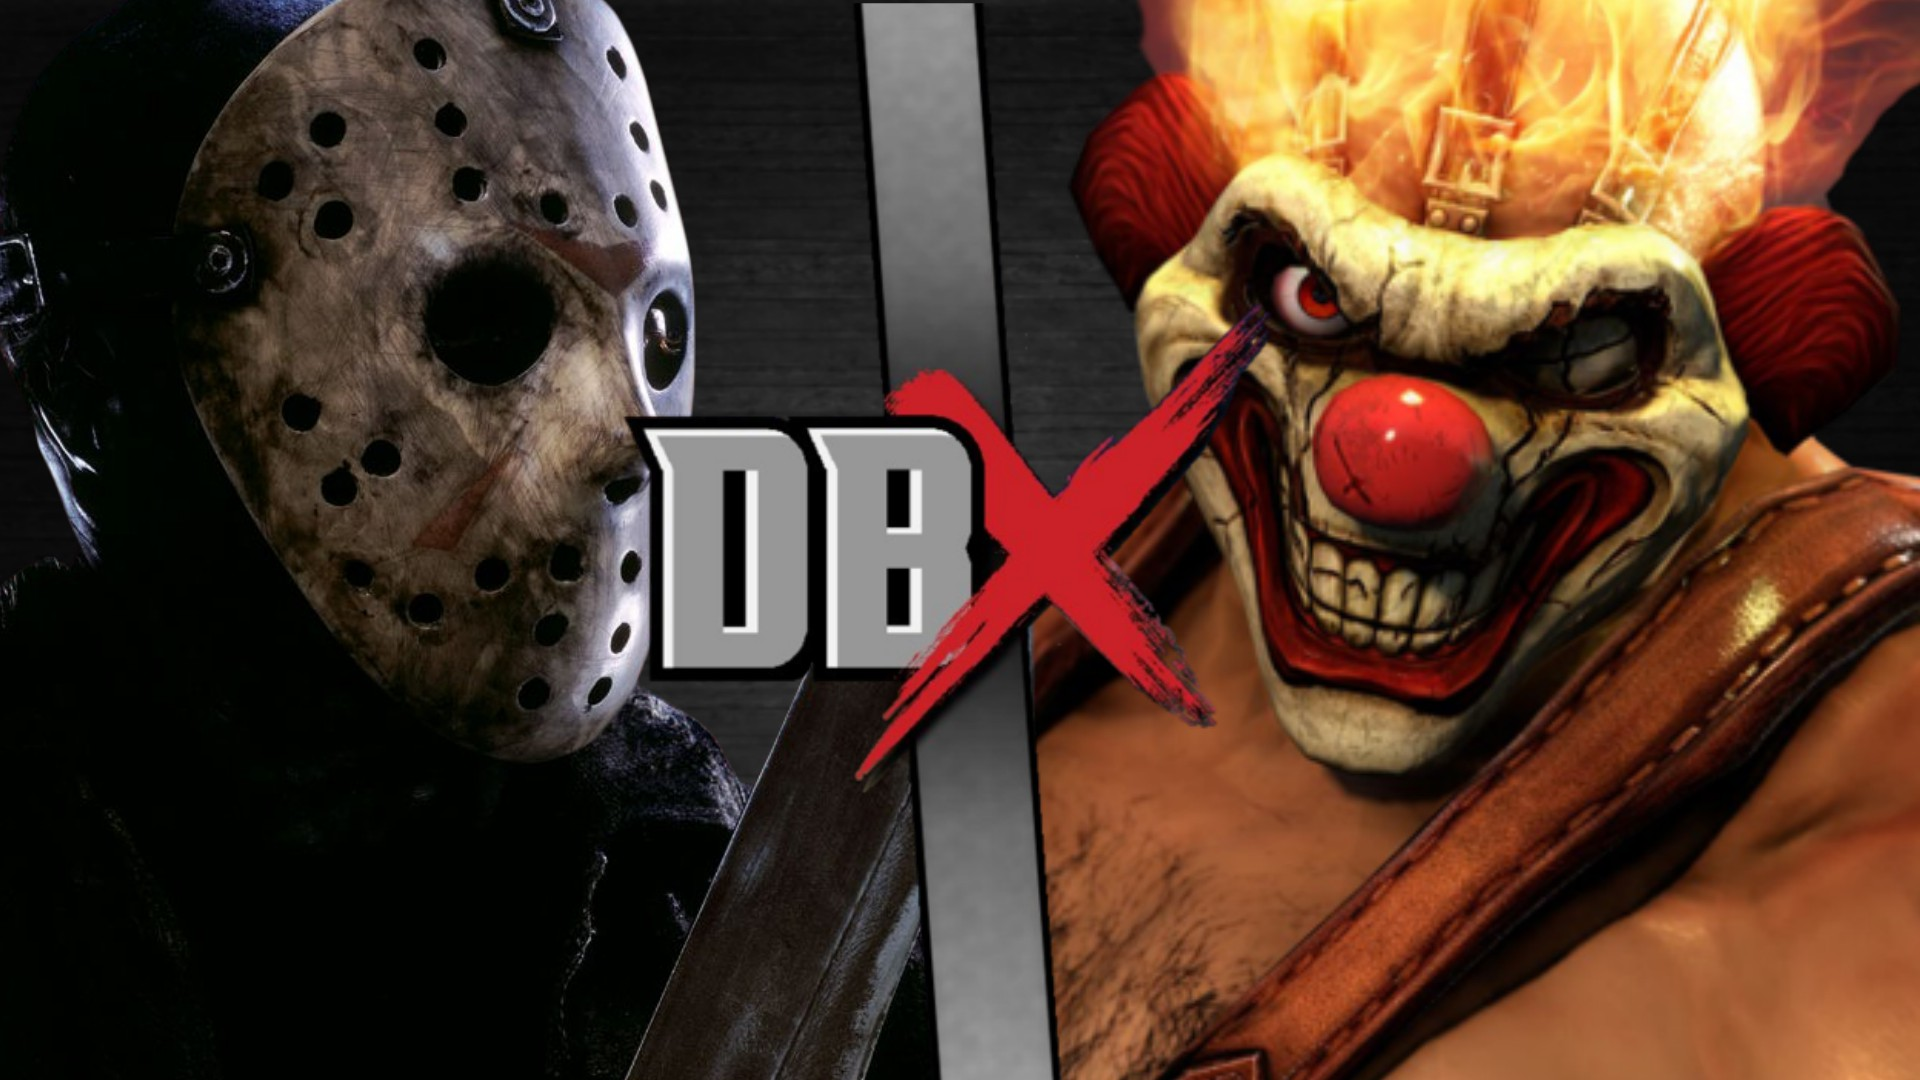 jason voorhees vs sweet tooth dbx fanon wikia fandom